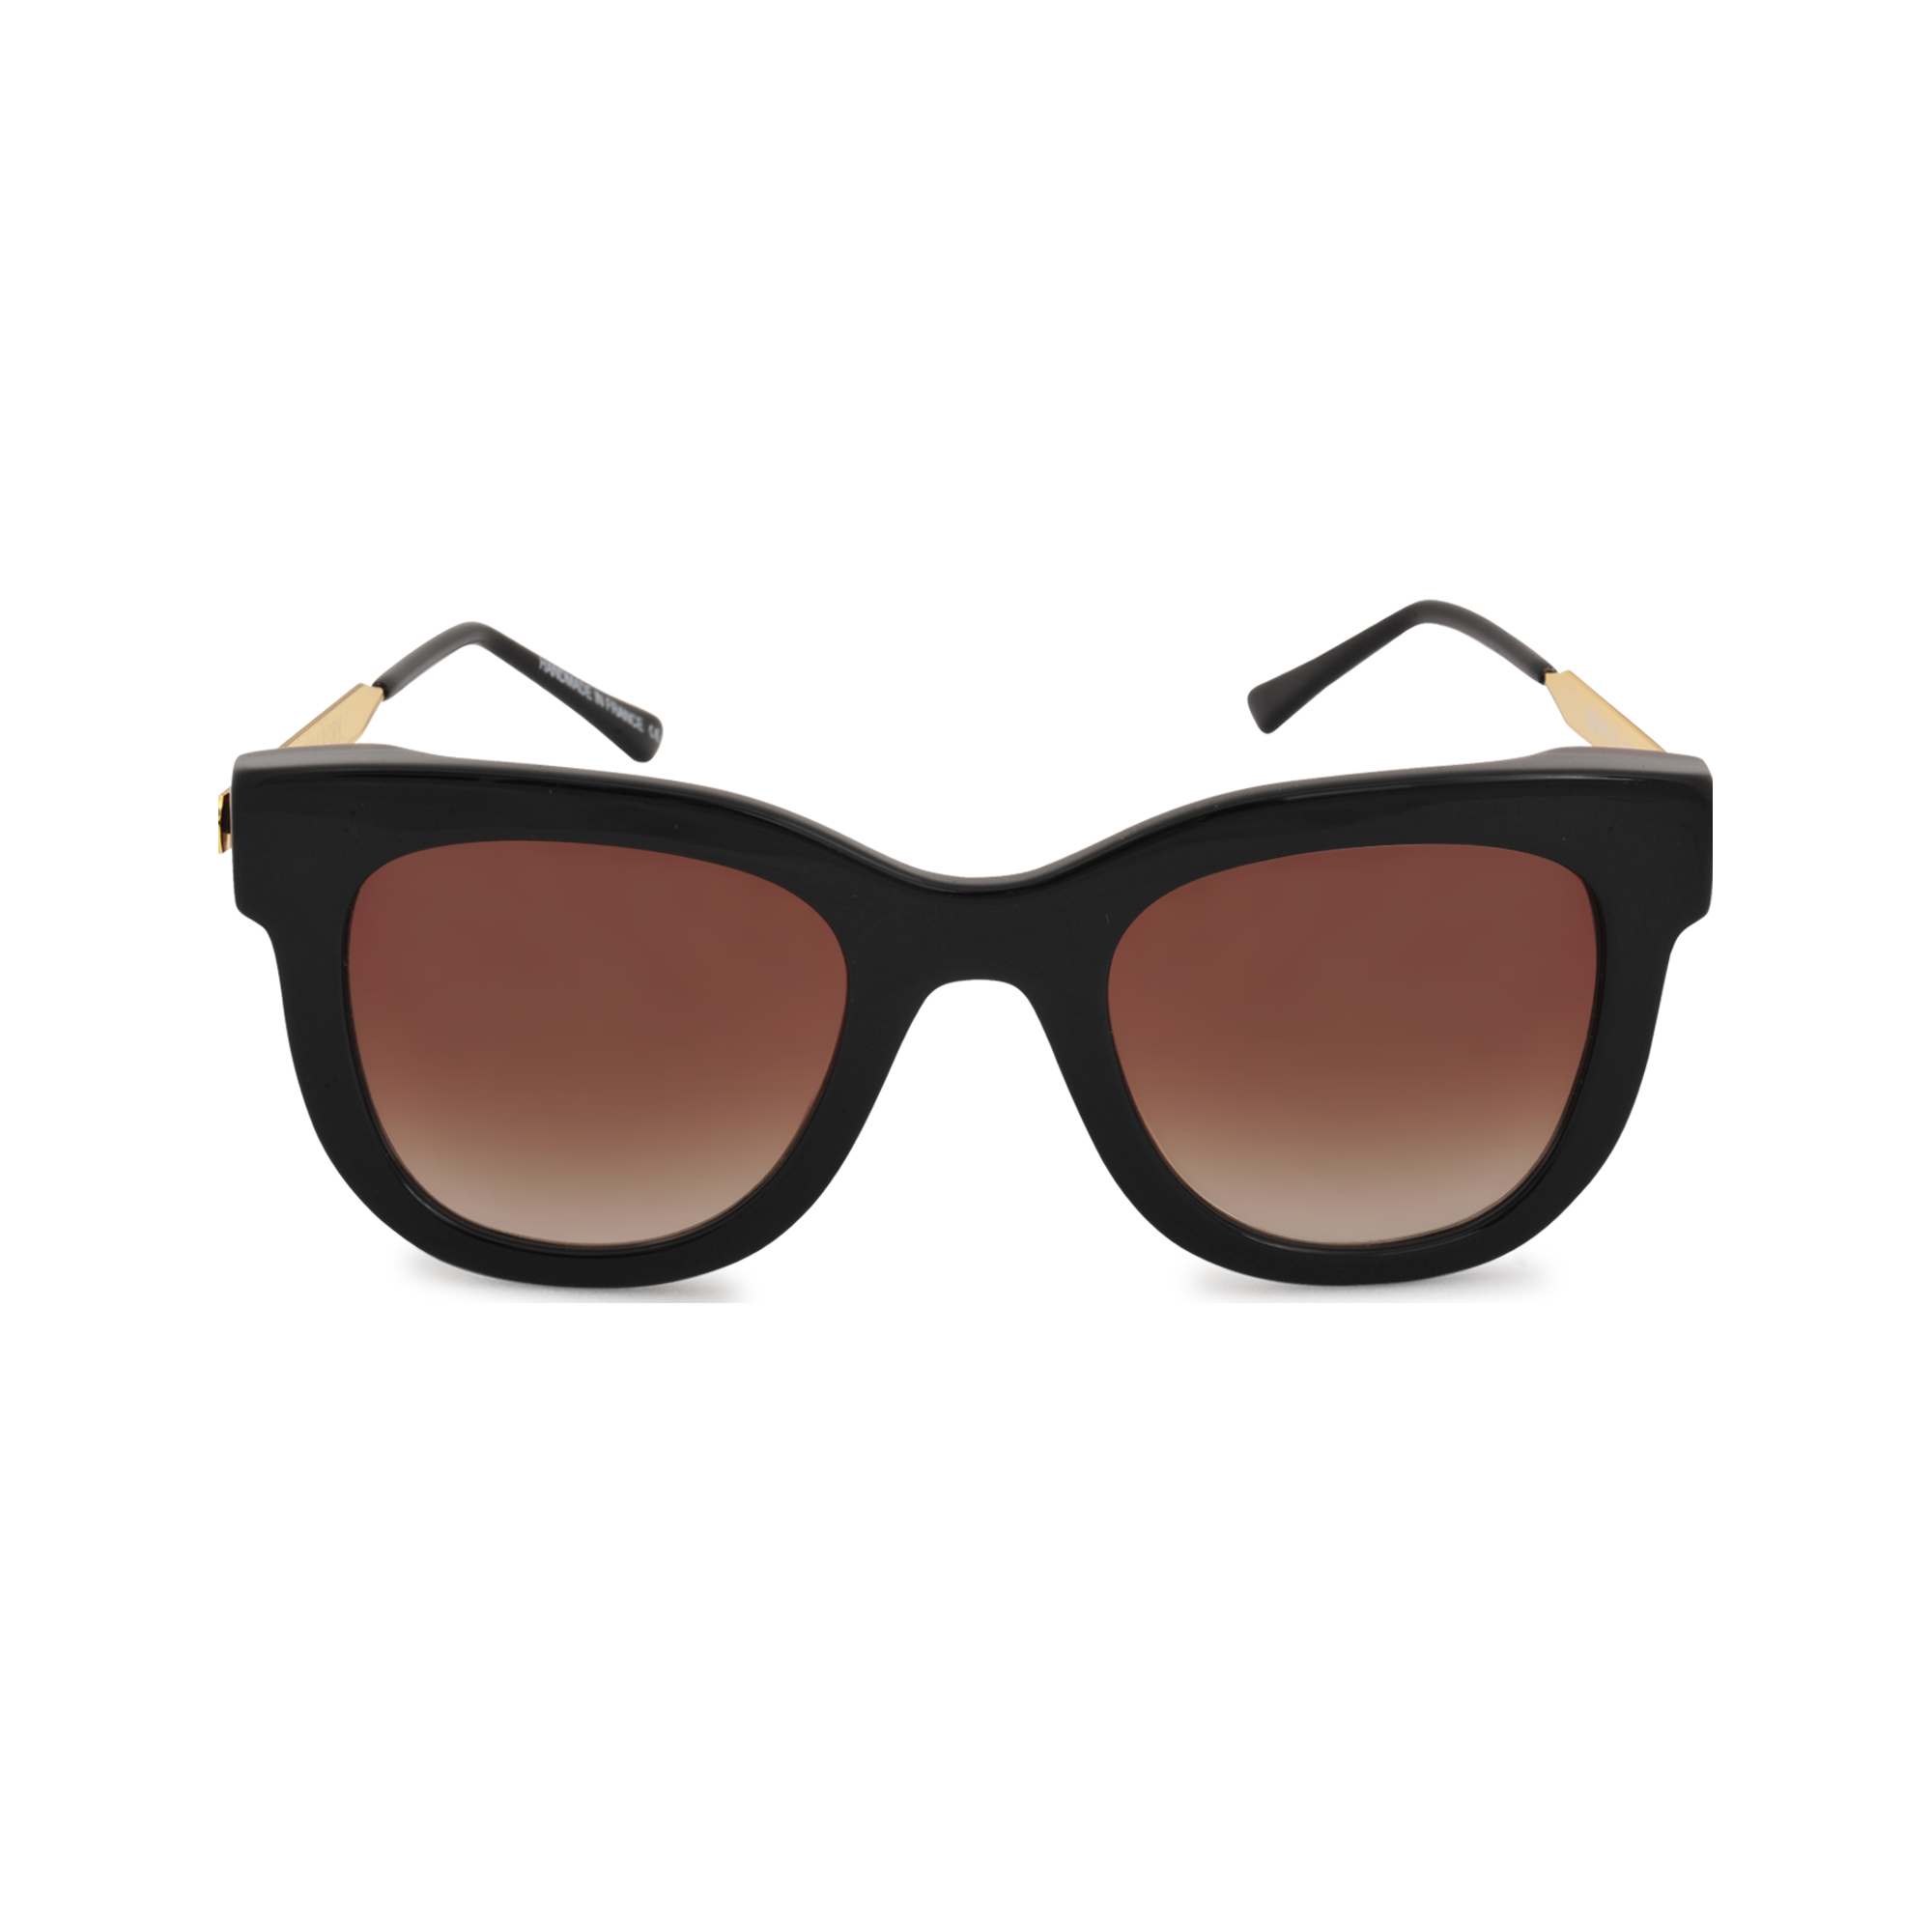 Thierry lasry Sexxxy 101 Sunglasses in Black